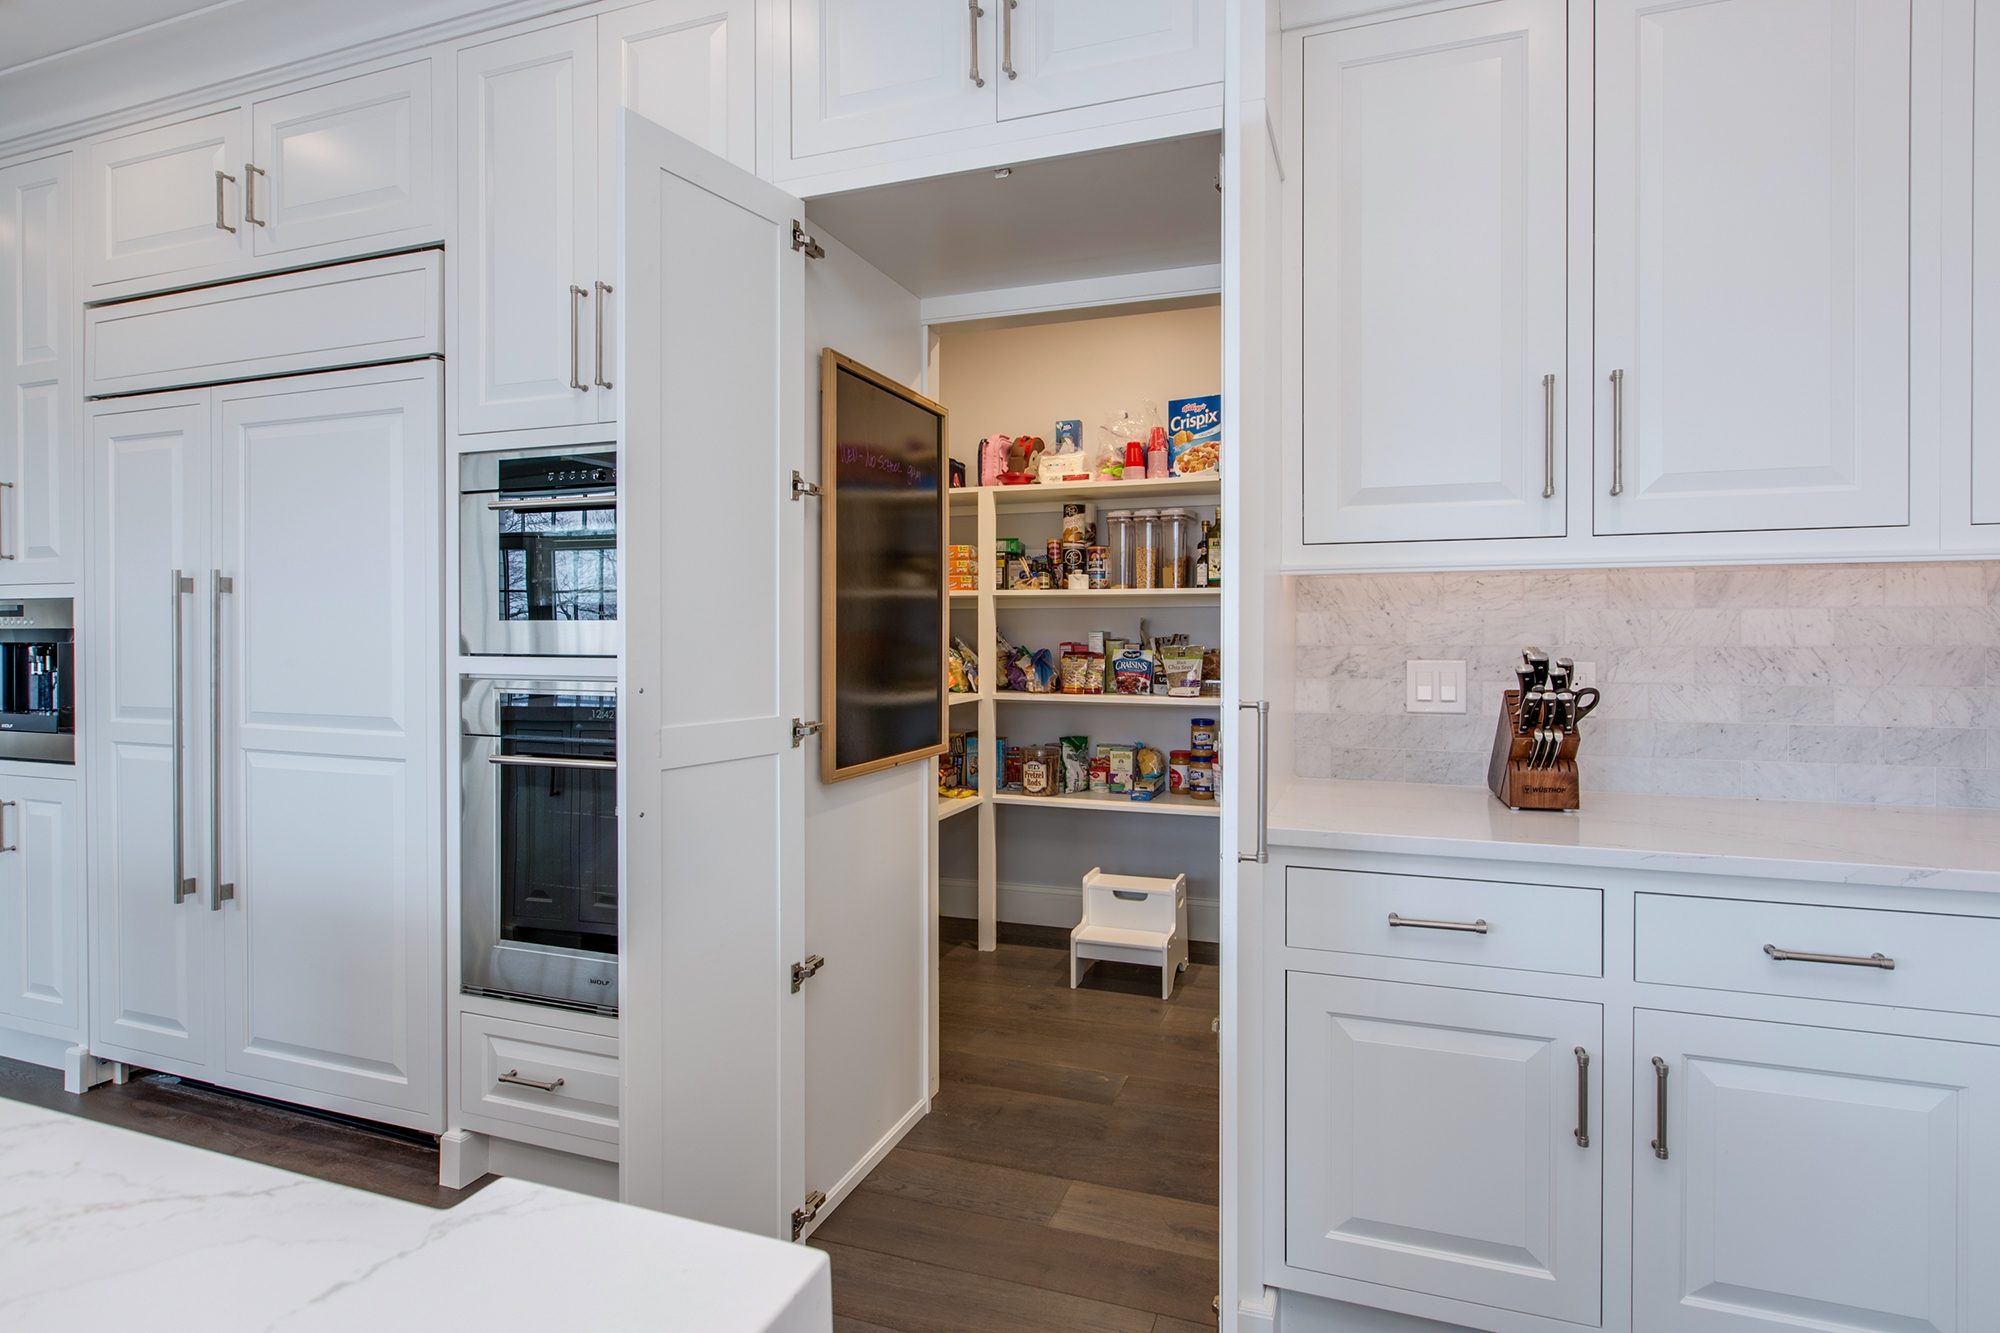 Painted Kitchen Cabinets in White by Showplace Cabinetry - View 9